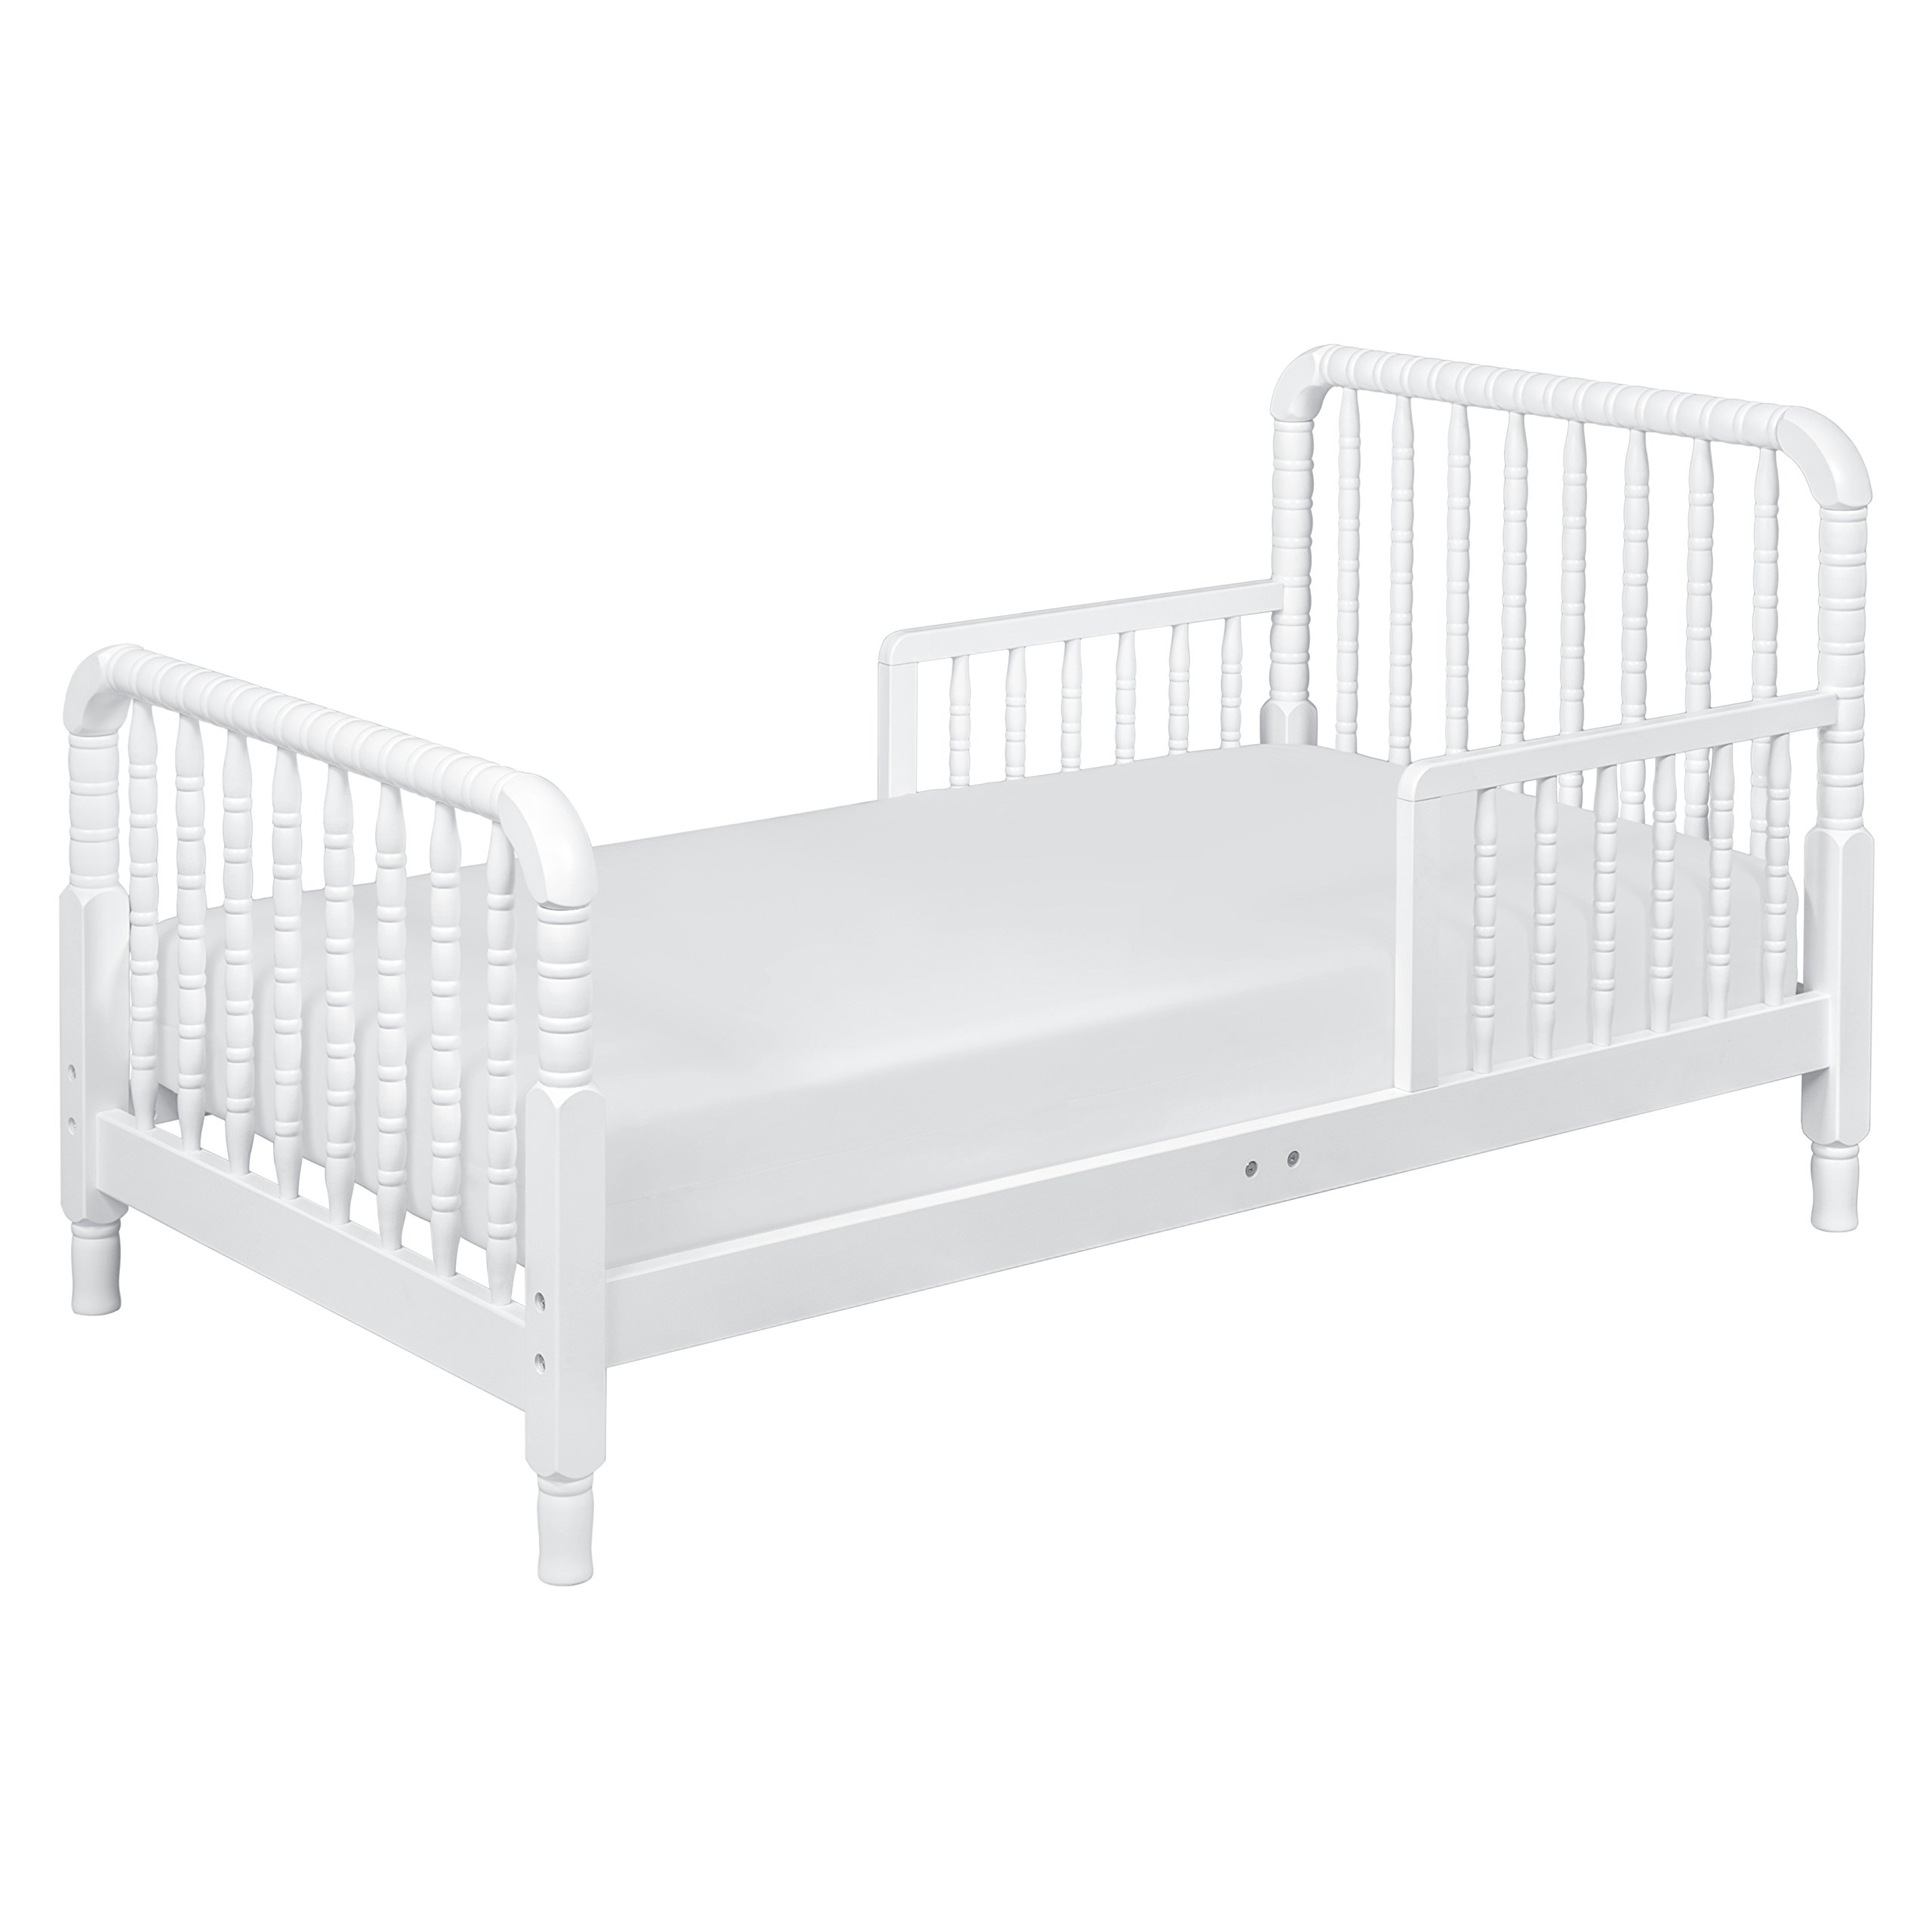 lind a finish details the toddler future limited but humans in bed hardwood of available convertible signature little with that posts jenny add pin crib intricate cribs edition now spindle this kit style davinci boasts my and